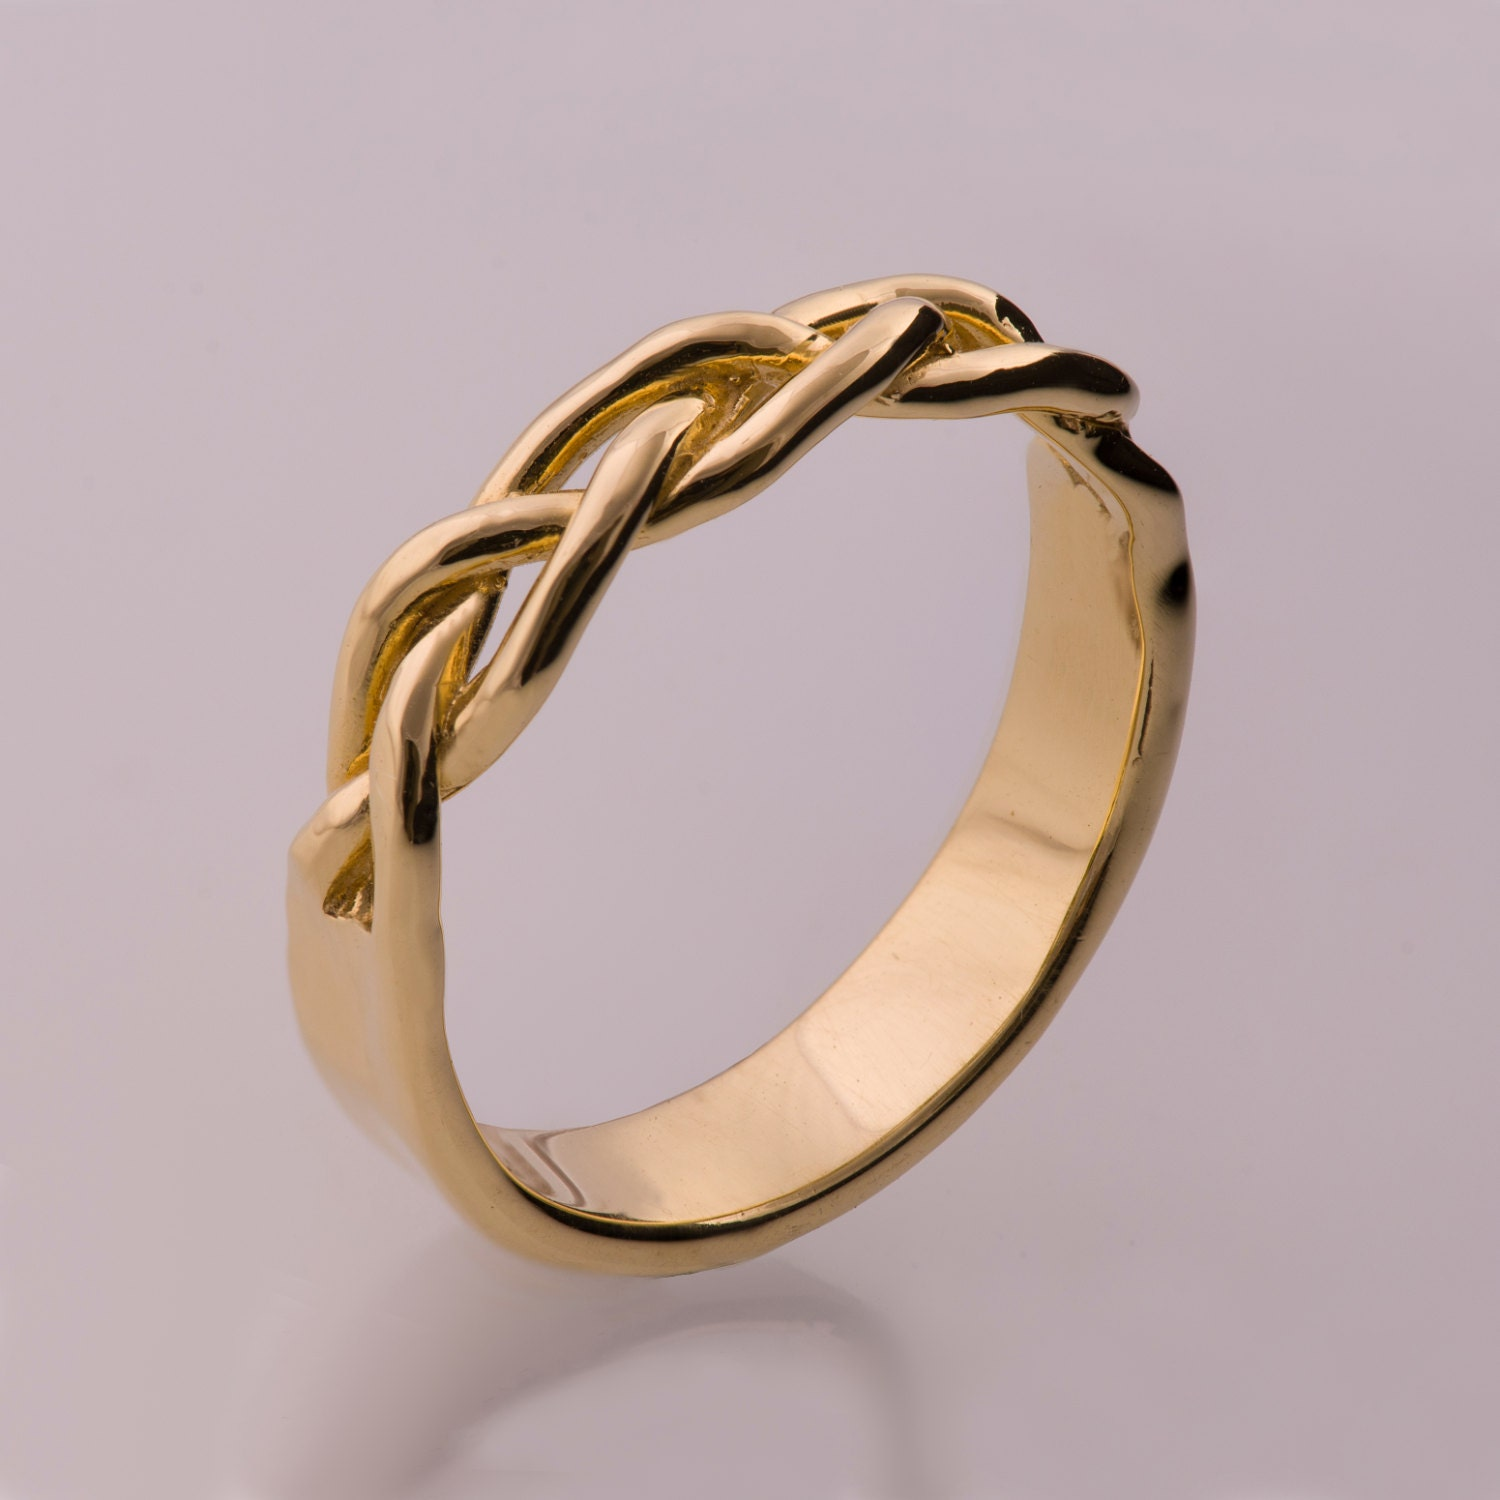 Braided Ring No 6 14K Gold Stackable Ring Wedding Band